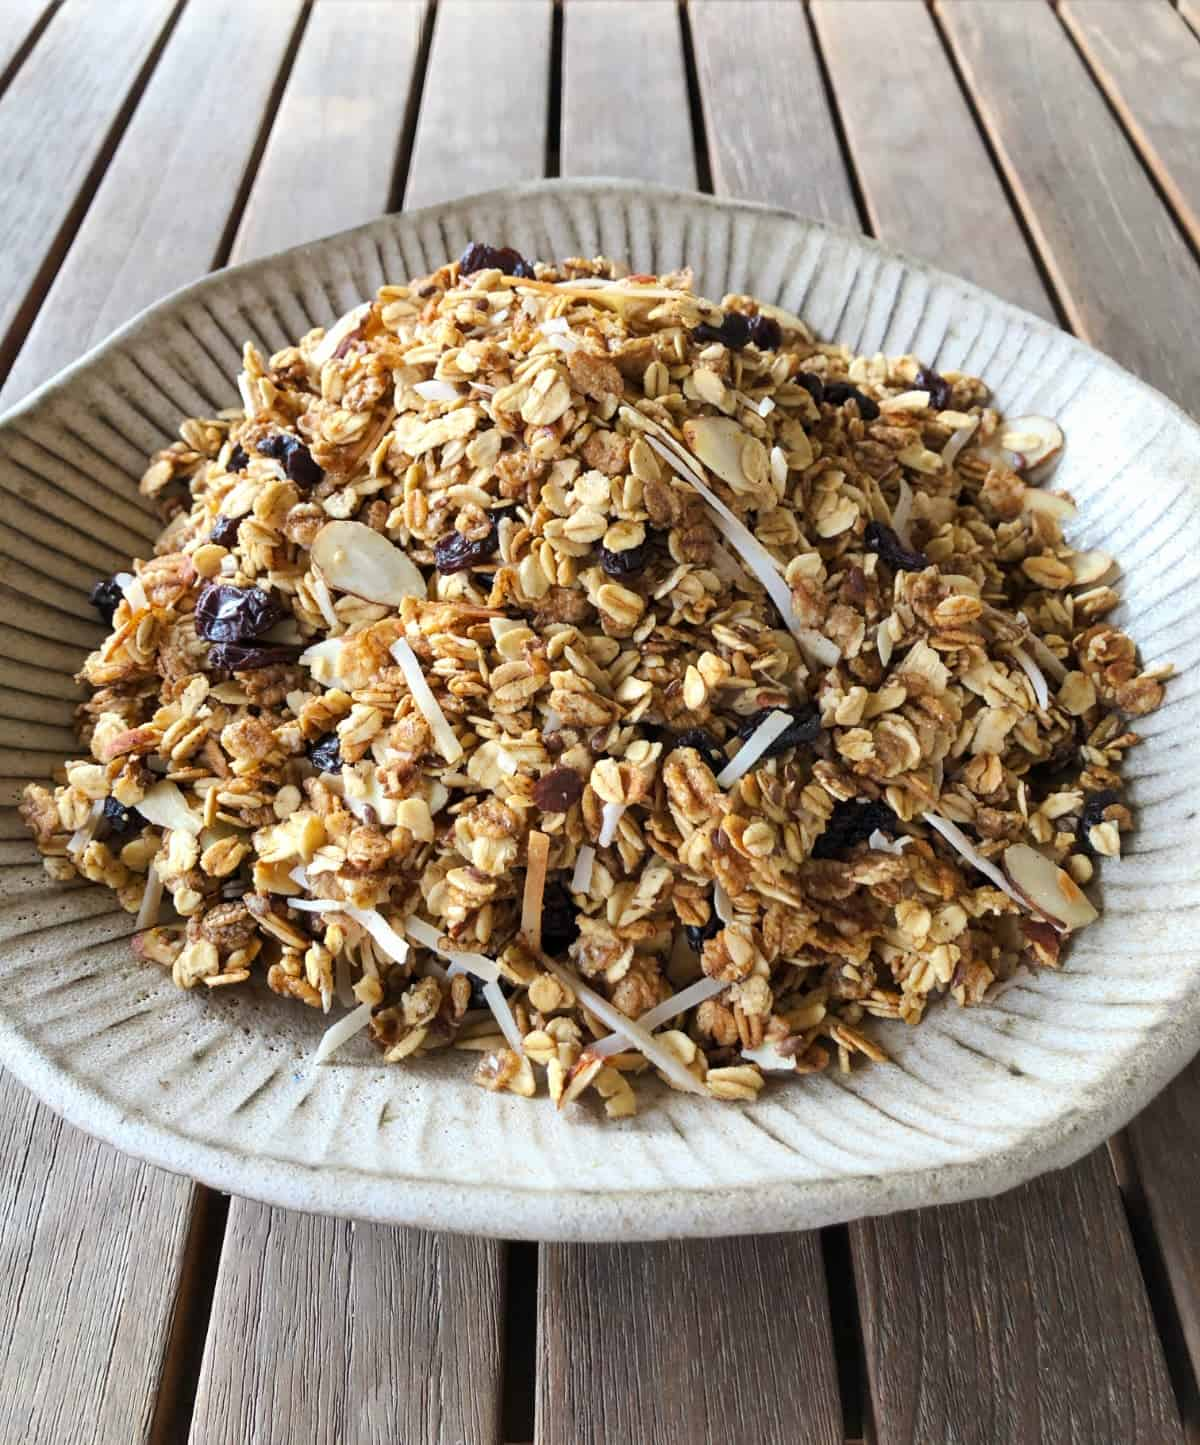 Homemade almond granola ceramic bowl on wooden table.